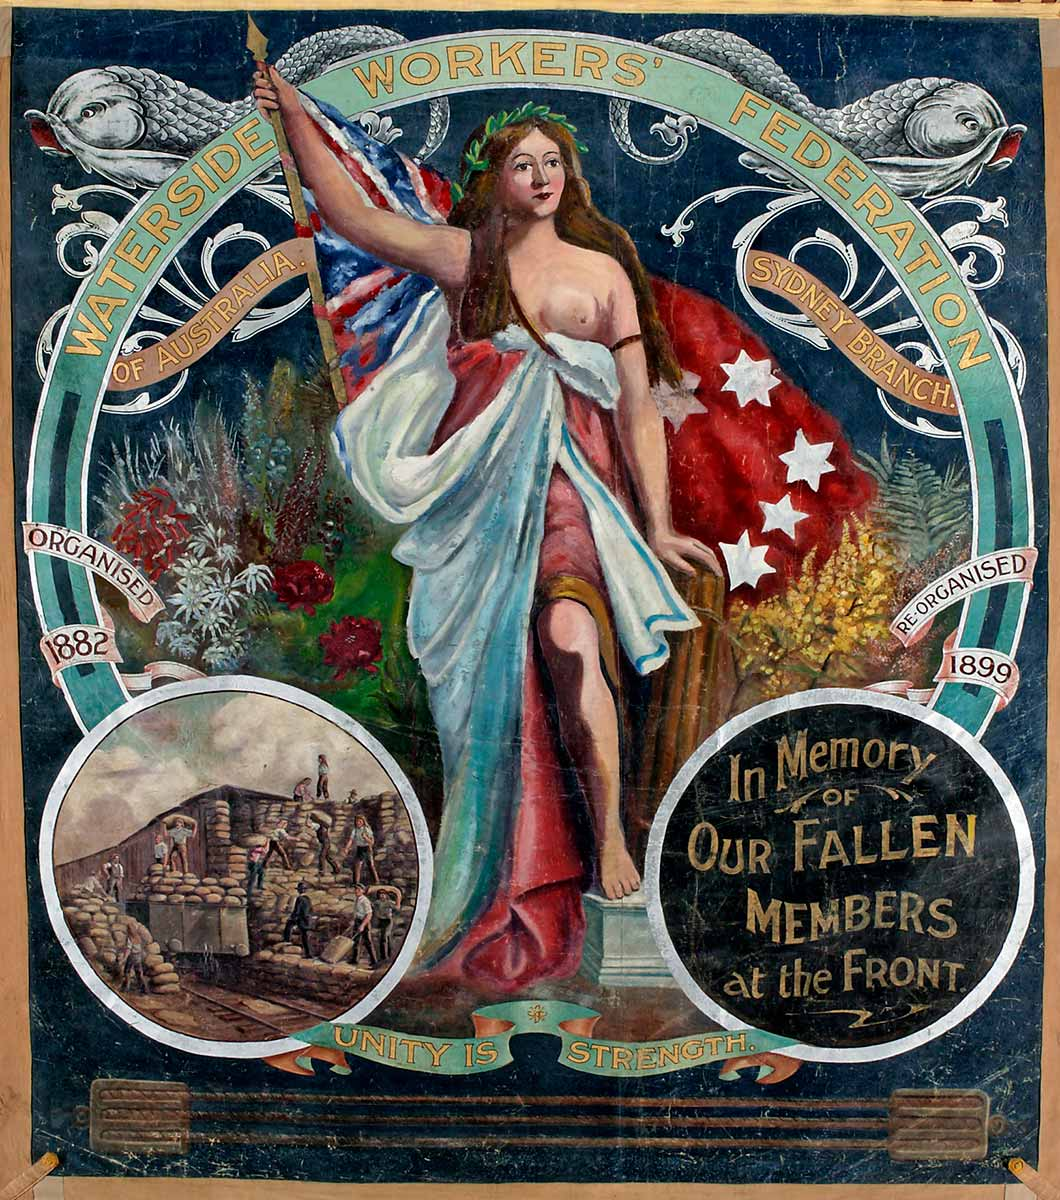 Banner with a central image of a robed woman holding the red ensign. She stands surrounded by Australian wildflowers. A small circular inset at the bottom left of the banner depicts shows men stacking and carrying sacks. An inset on the right says 'In Memory of Our Fallen Members at the Front' . 'Waterside Workers Federation' heads the banner and the words 'Unity is Strength' appear at the bottom. - click to view larger image